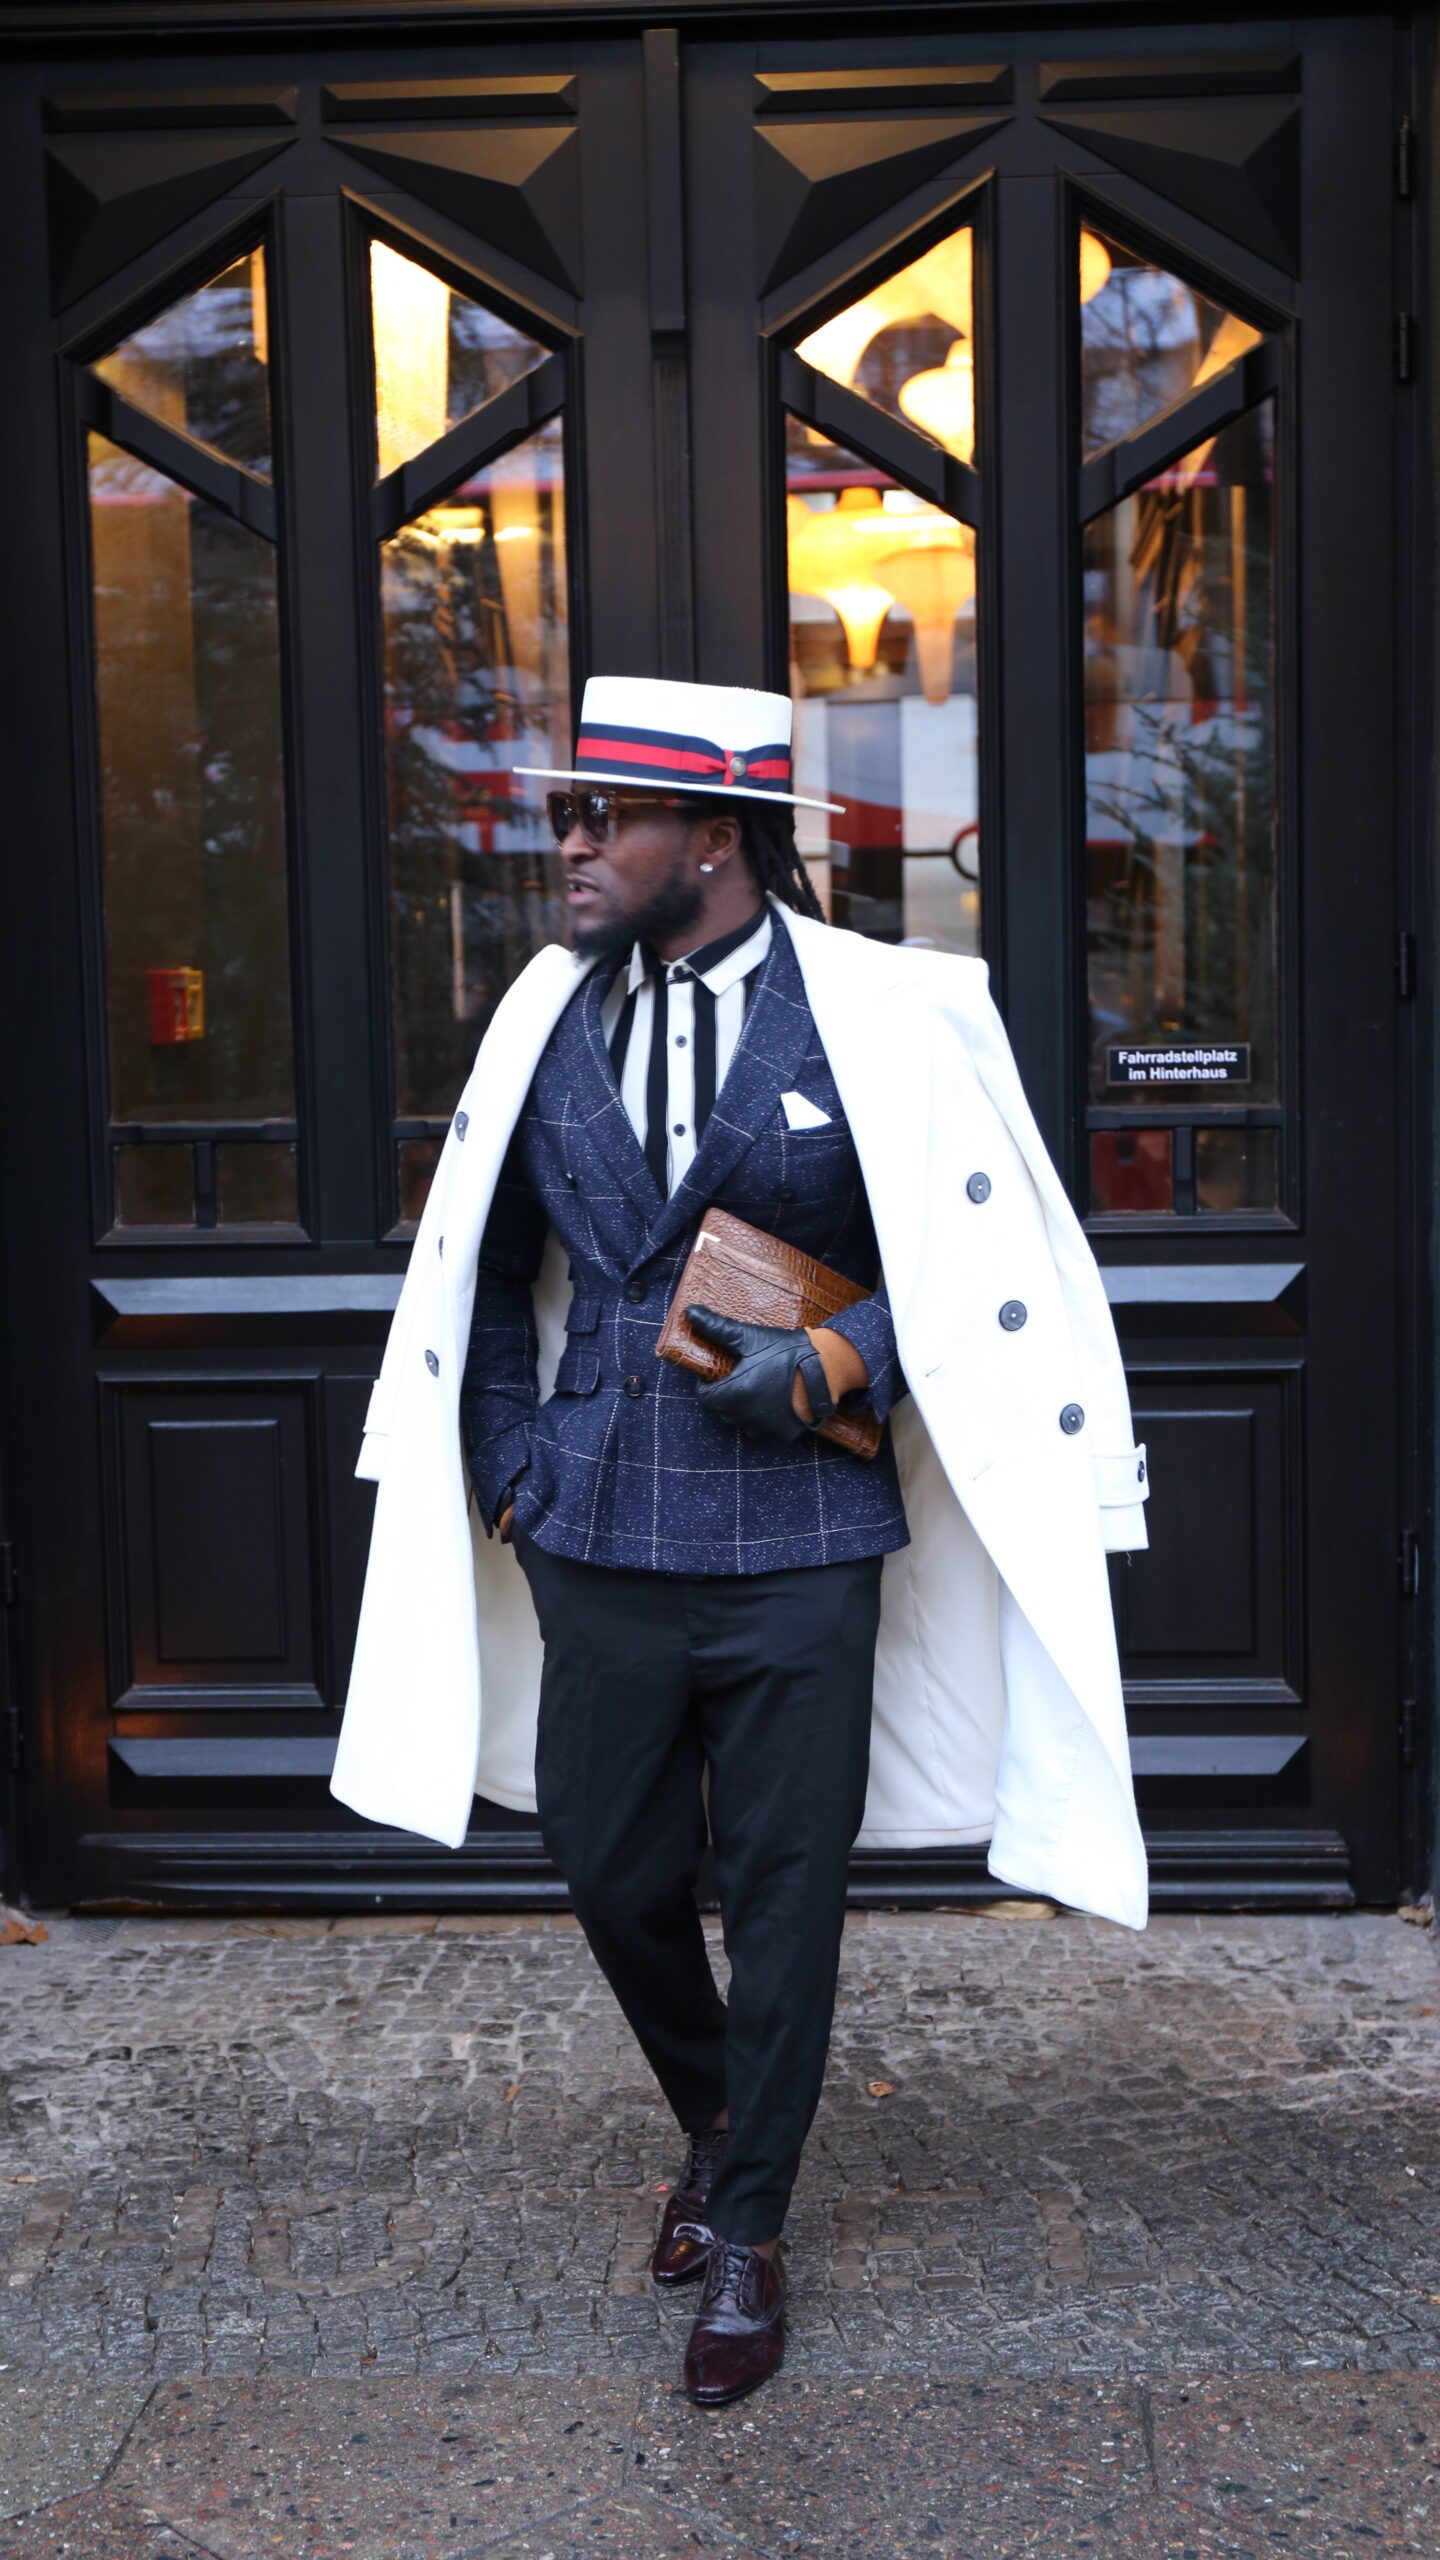 Gwei Noel Yengong is teaching us how to dress up for any occasion